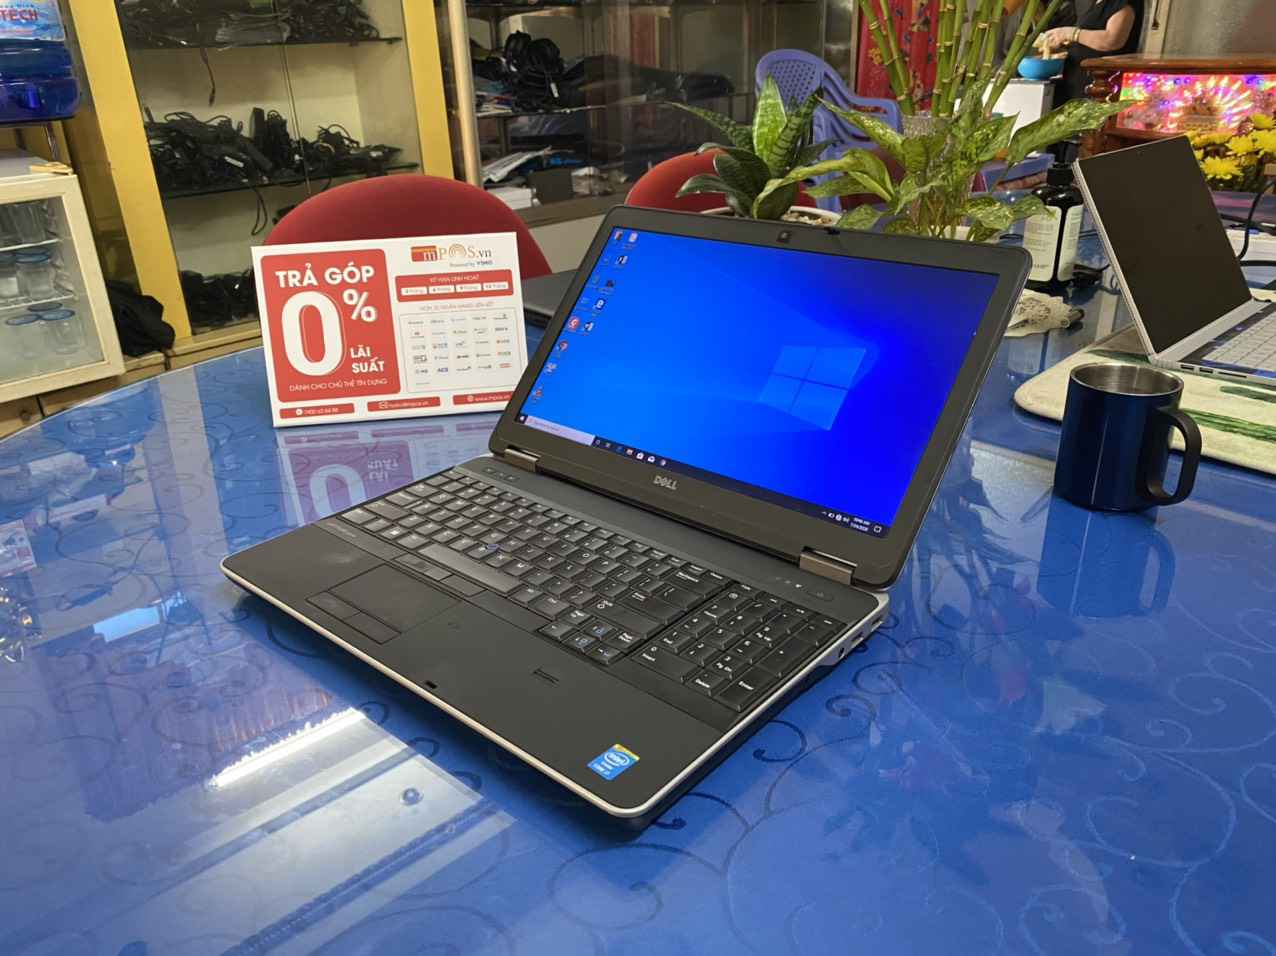 DELL LATITUDE E6540 I7 4610M  4GB 500GB SSD 15.6